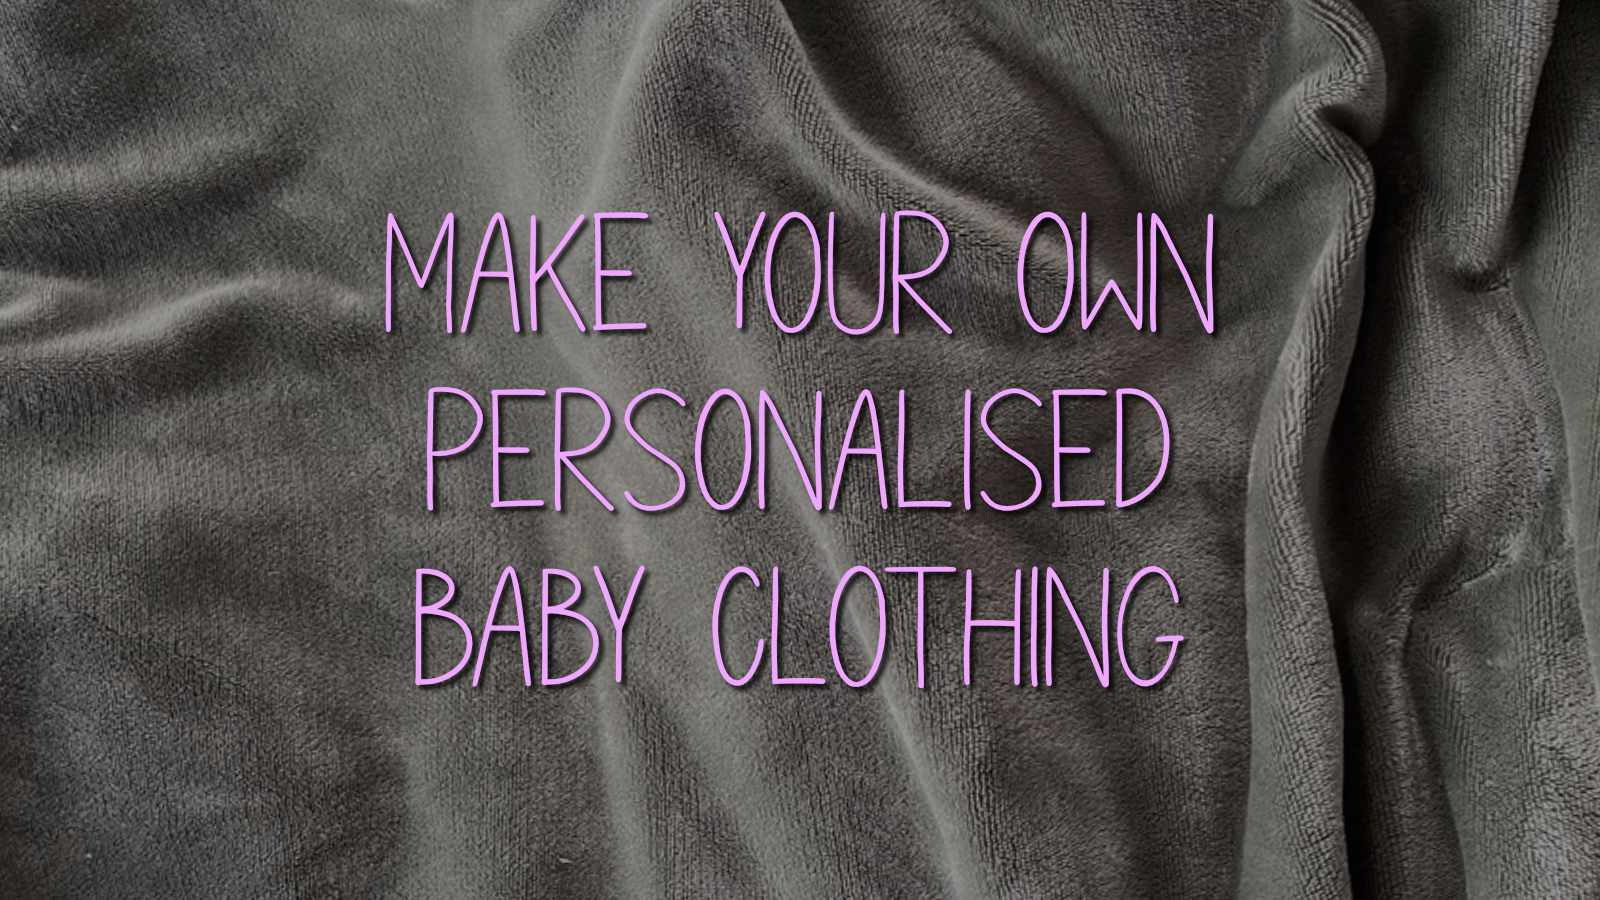 Personalised baby clothing business with Iron on Transfer Vinyl